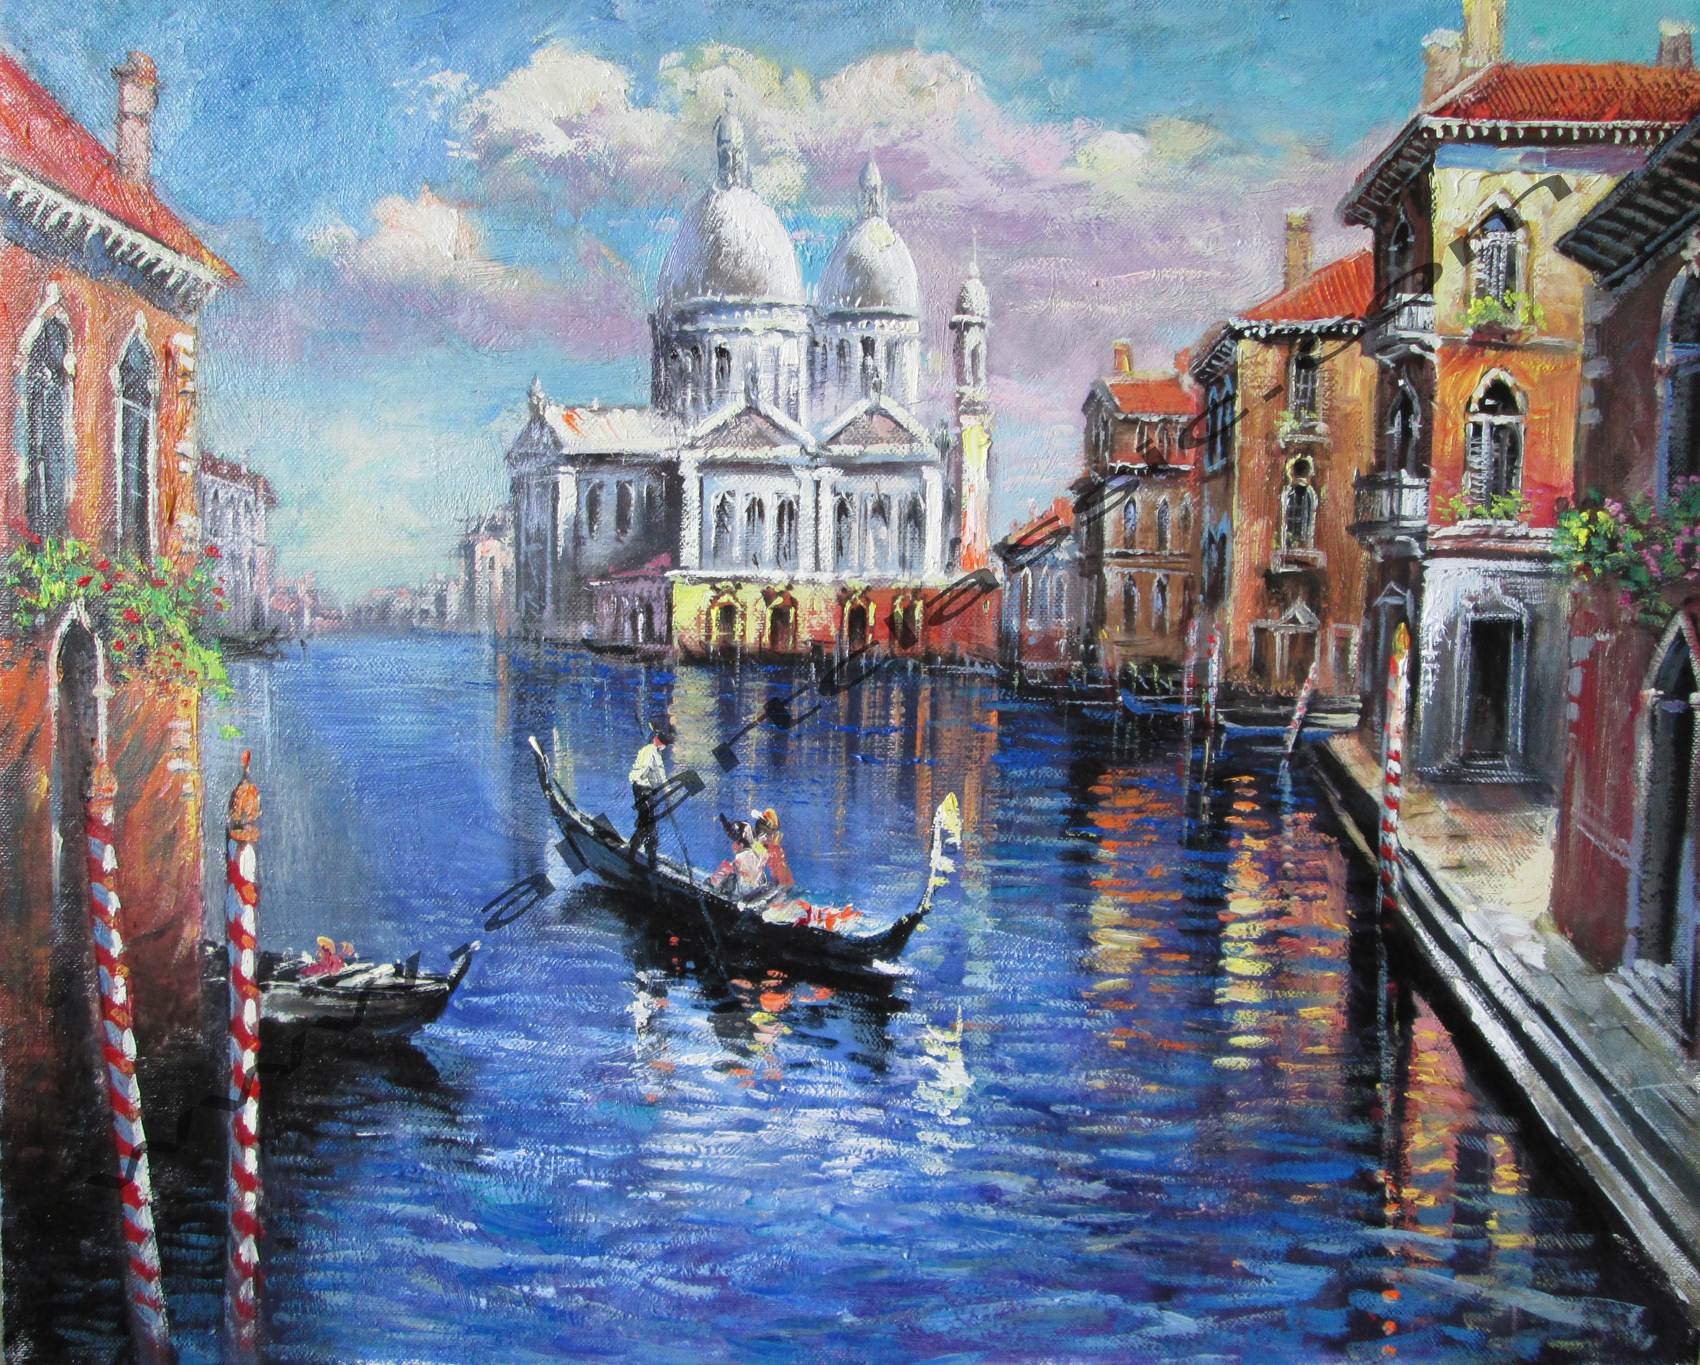 Original Oil Painting - The Grand Canal, Venice